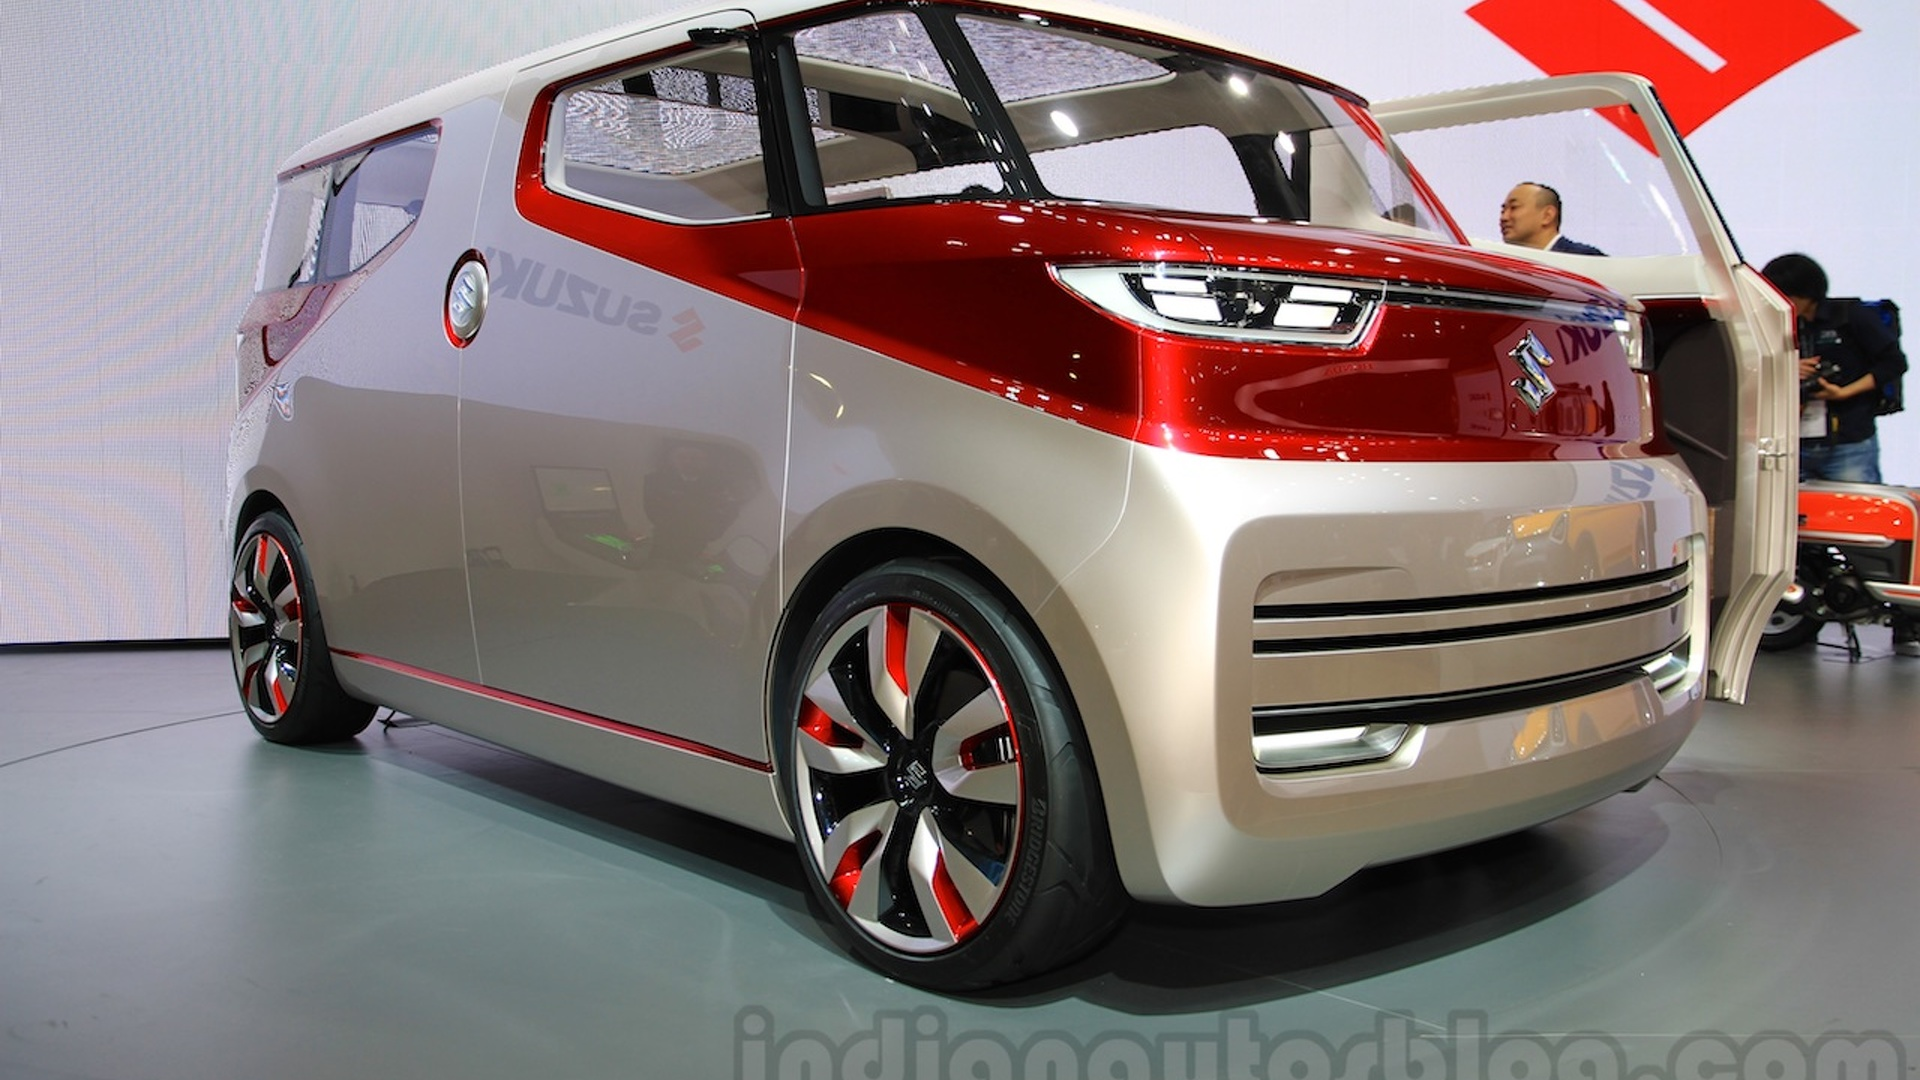 Suzuki reveals two funky concepts in Tokyo